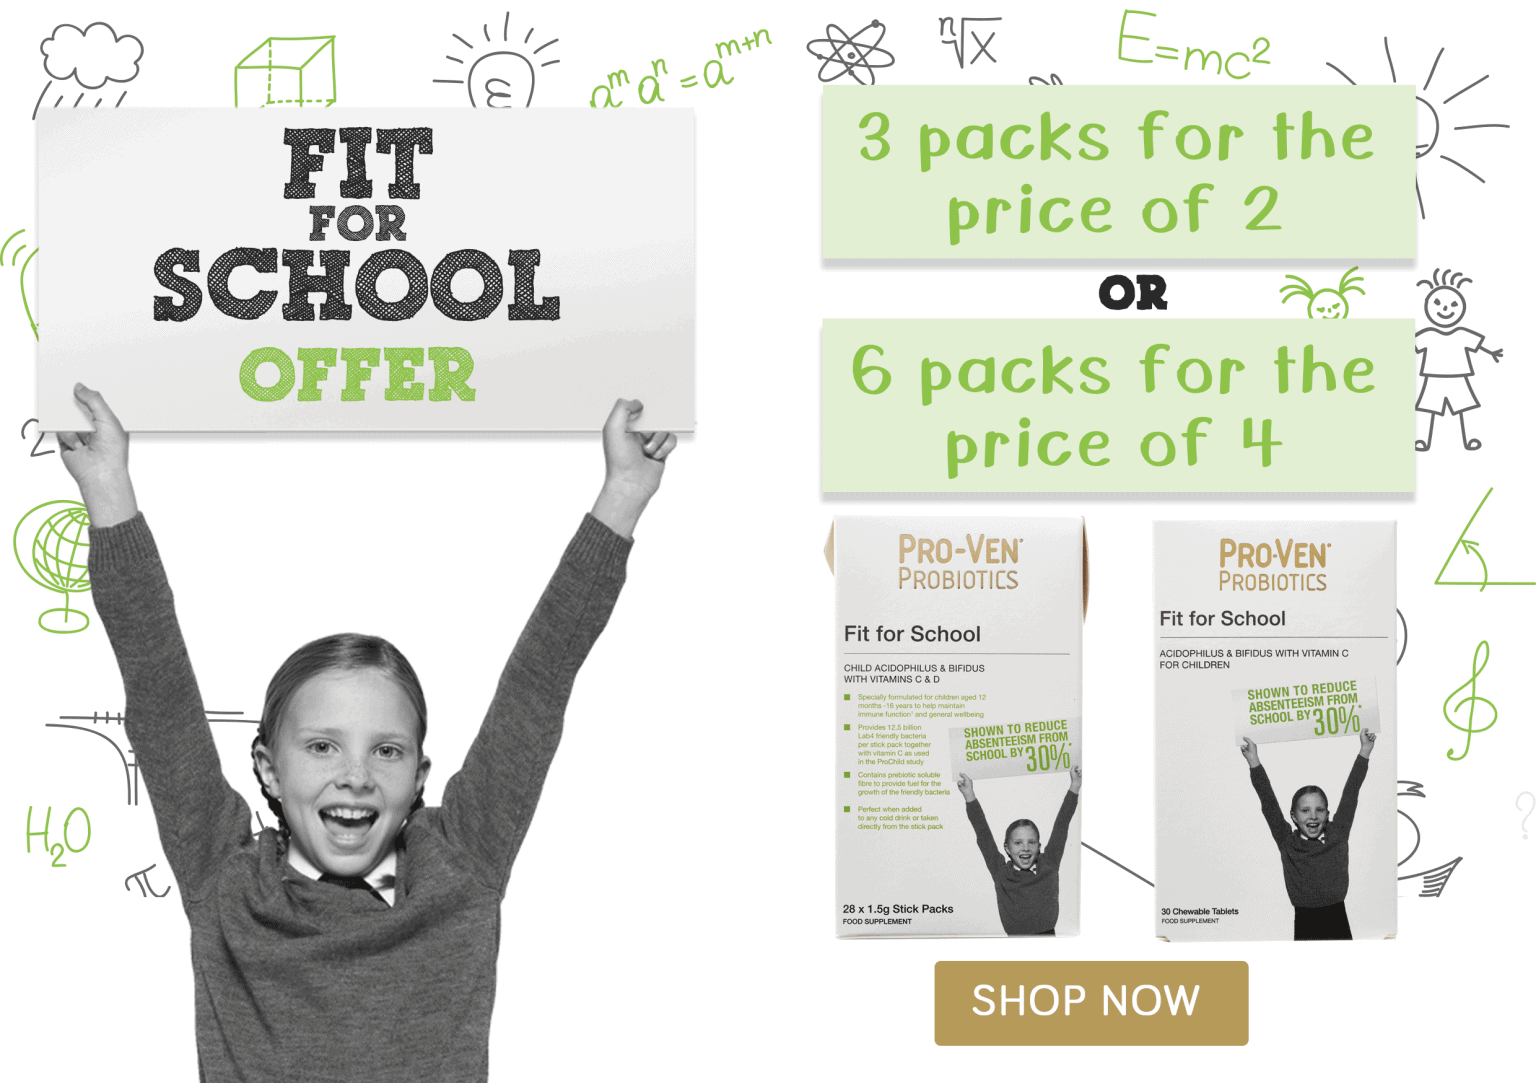 Fit for School offer September and October 2020